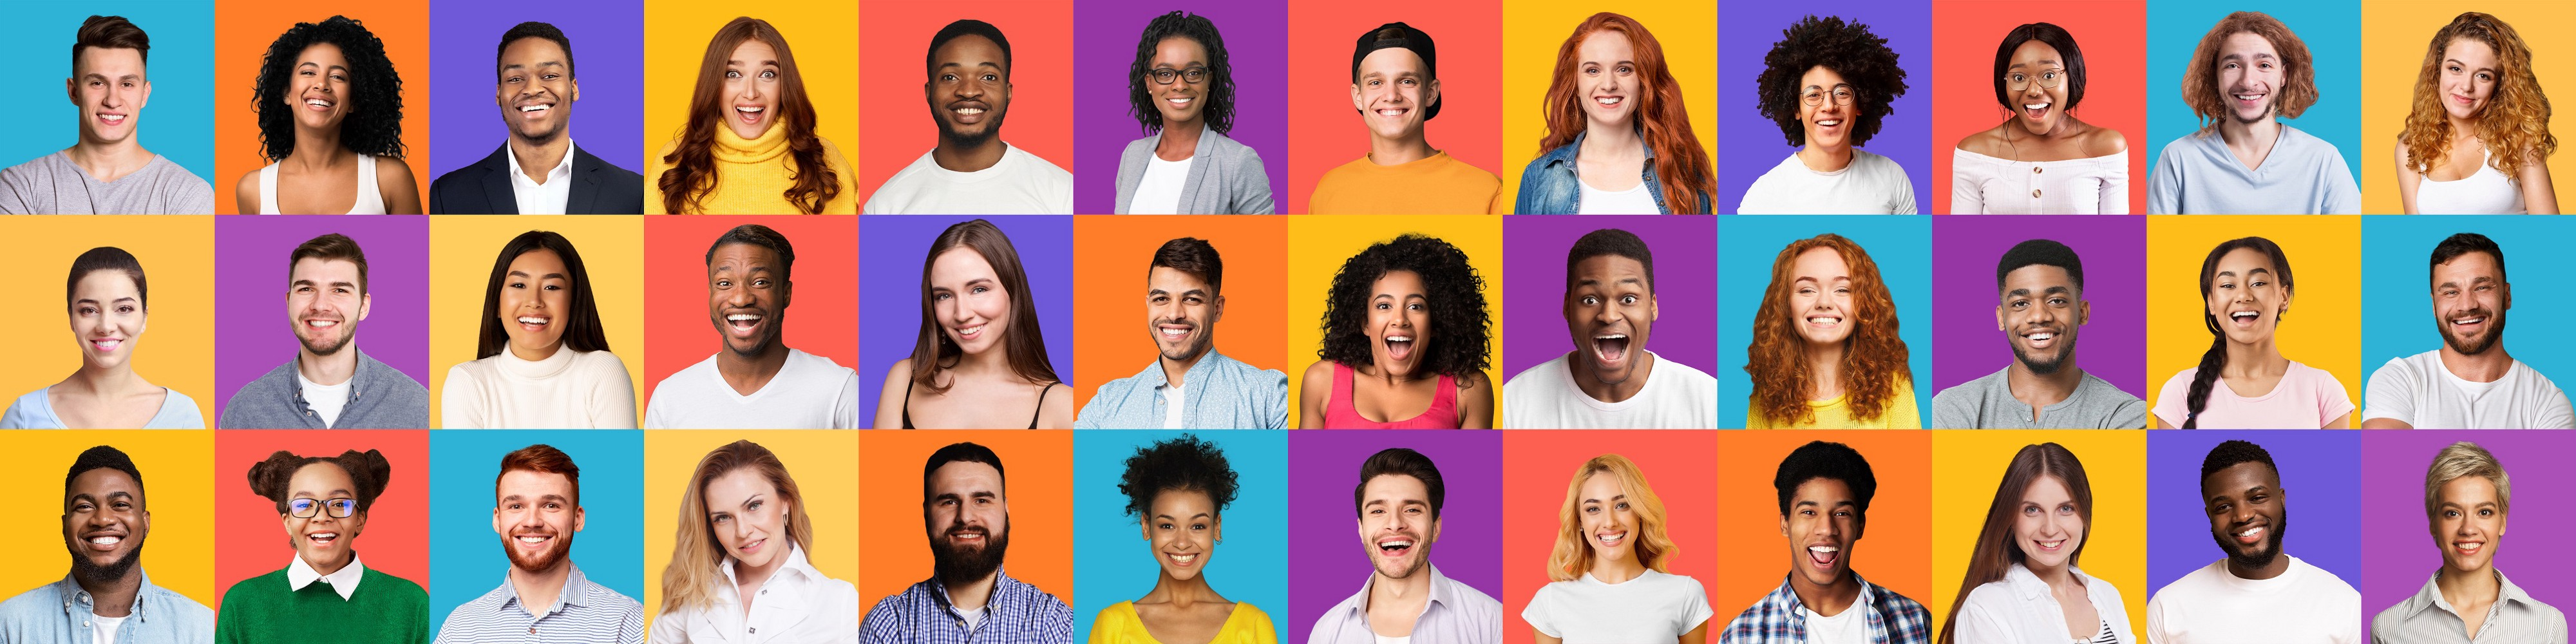 Set Of Positive People Portraits Posing Over Bright Backgrounds